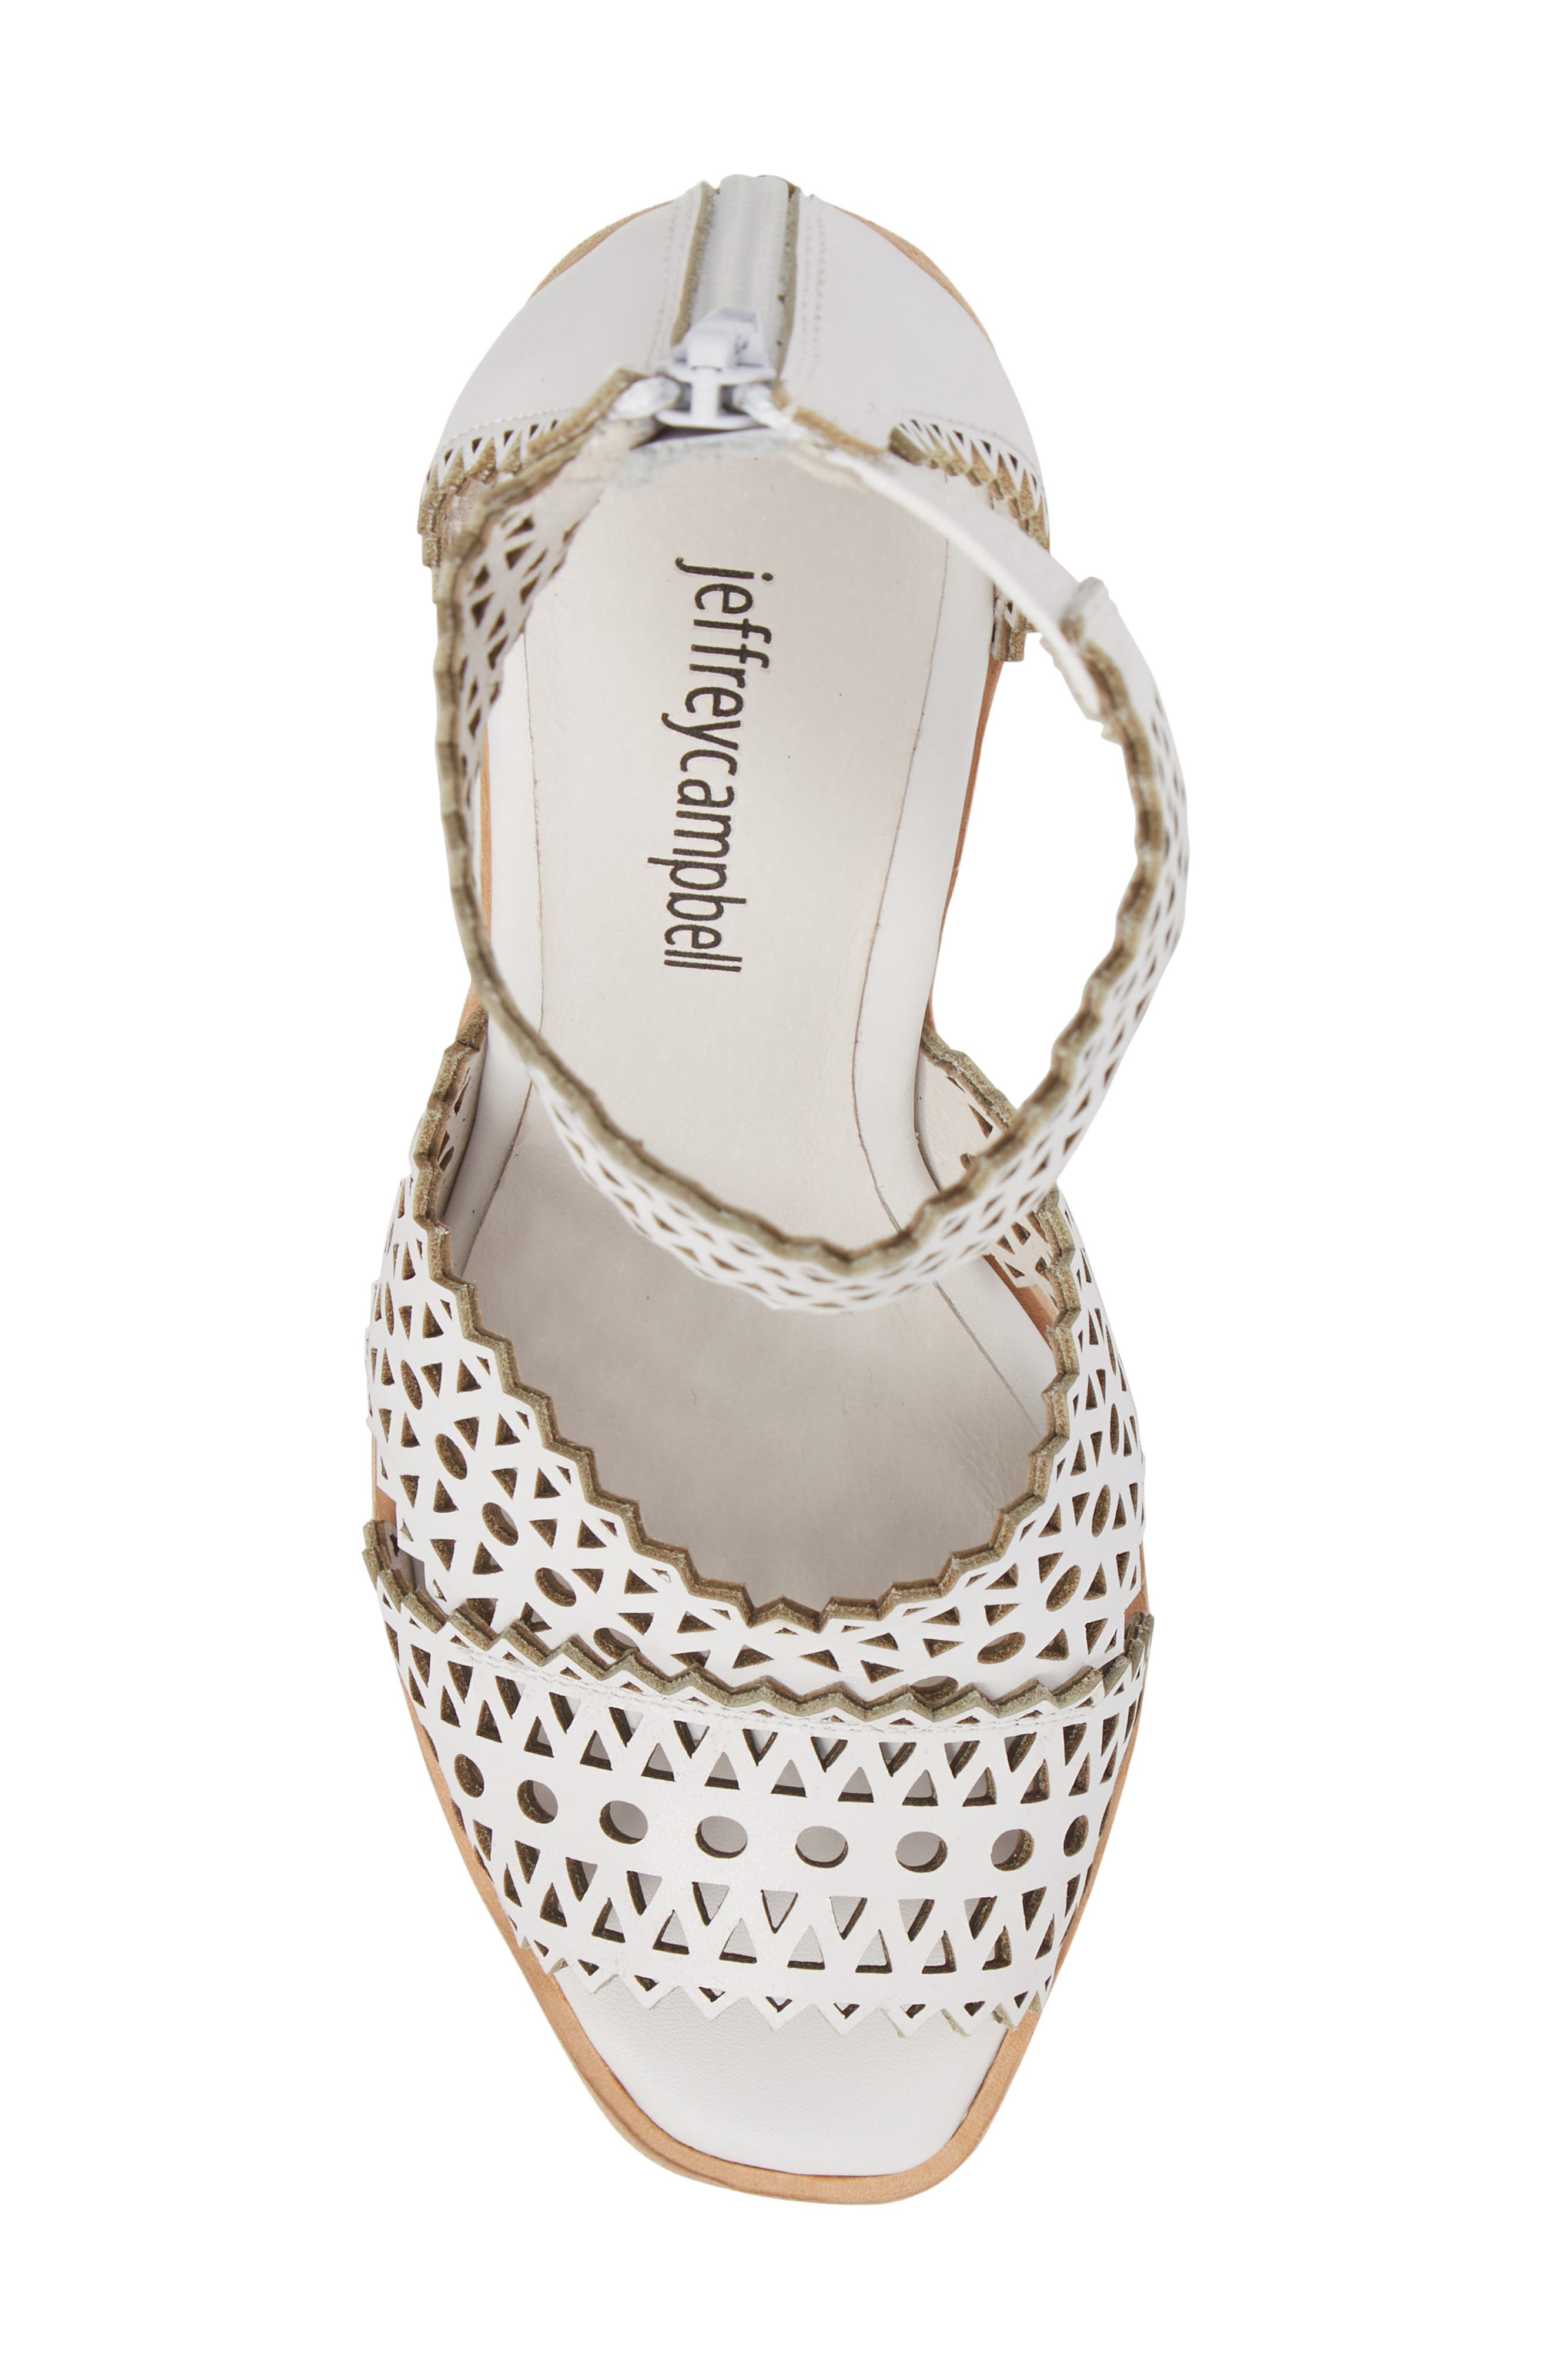 Besante Perforated Wedge Sandal,                             Alternate thumbnail 6, color,                             White